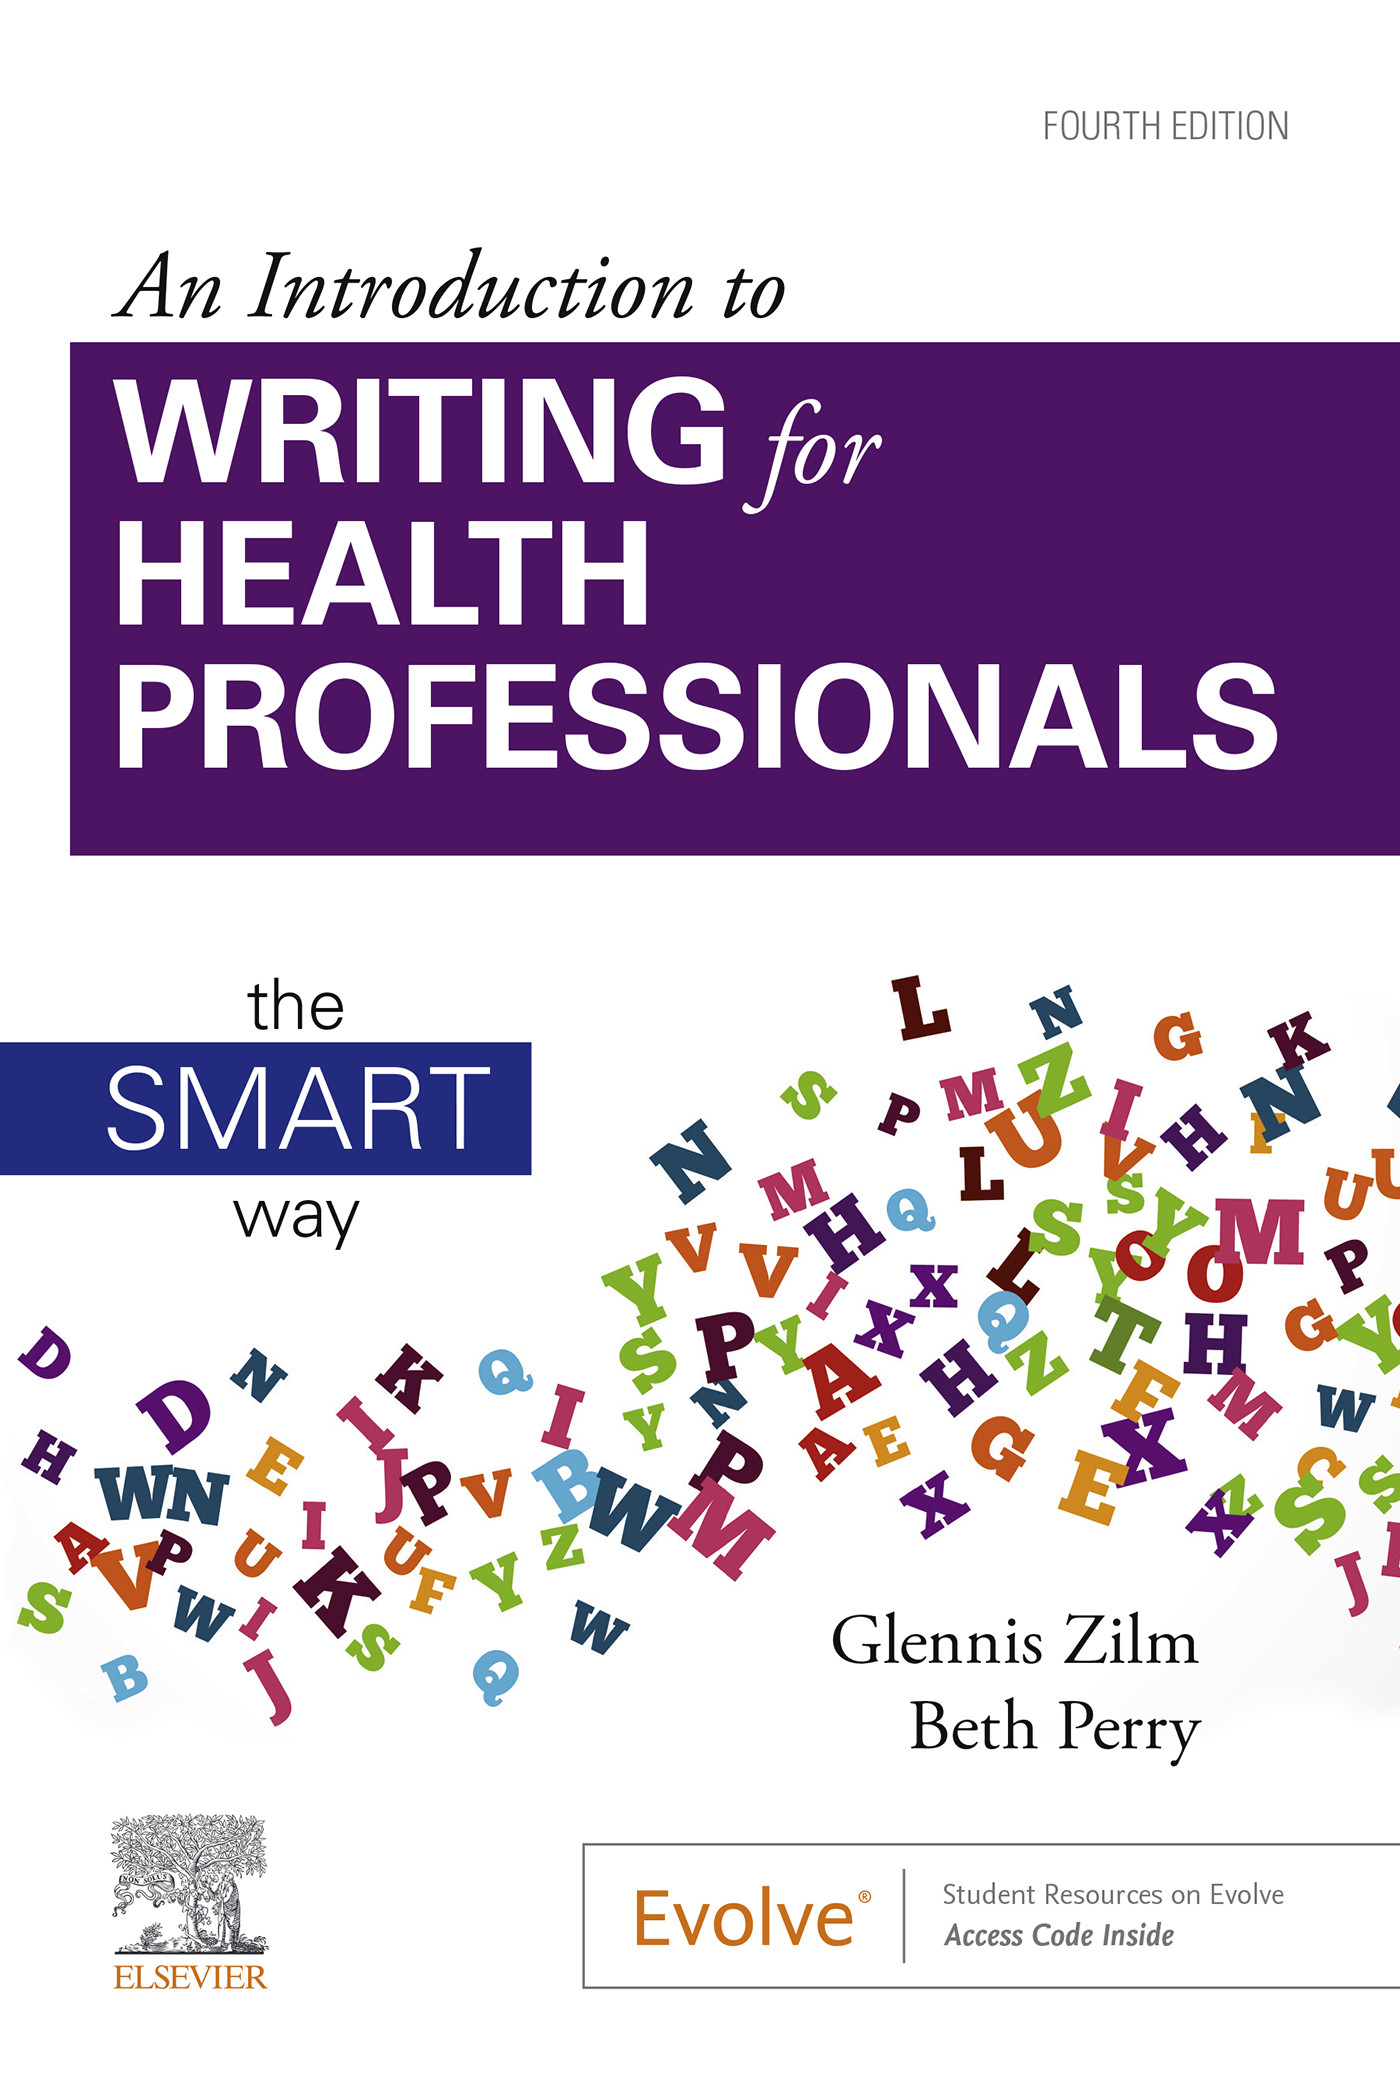 An Introduction to Writing for Health Professionals - E-Book